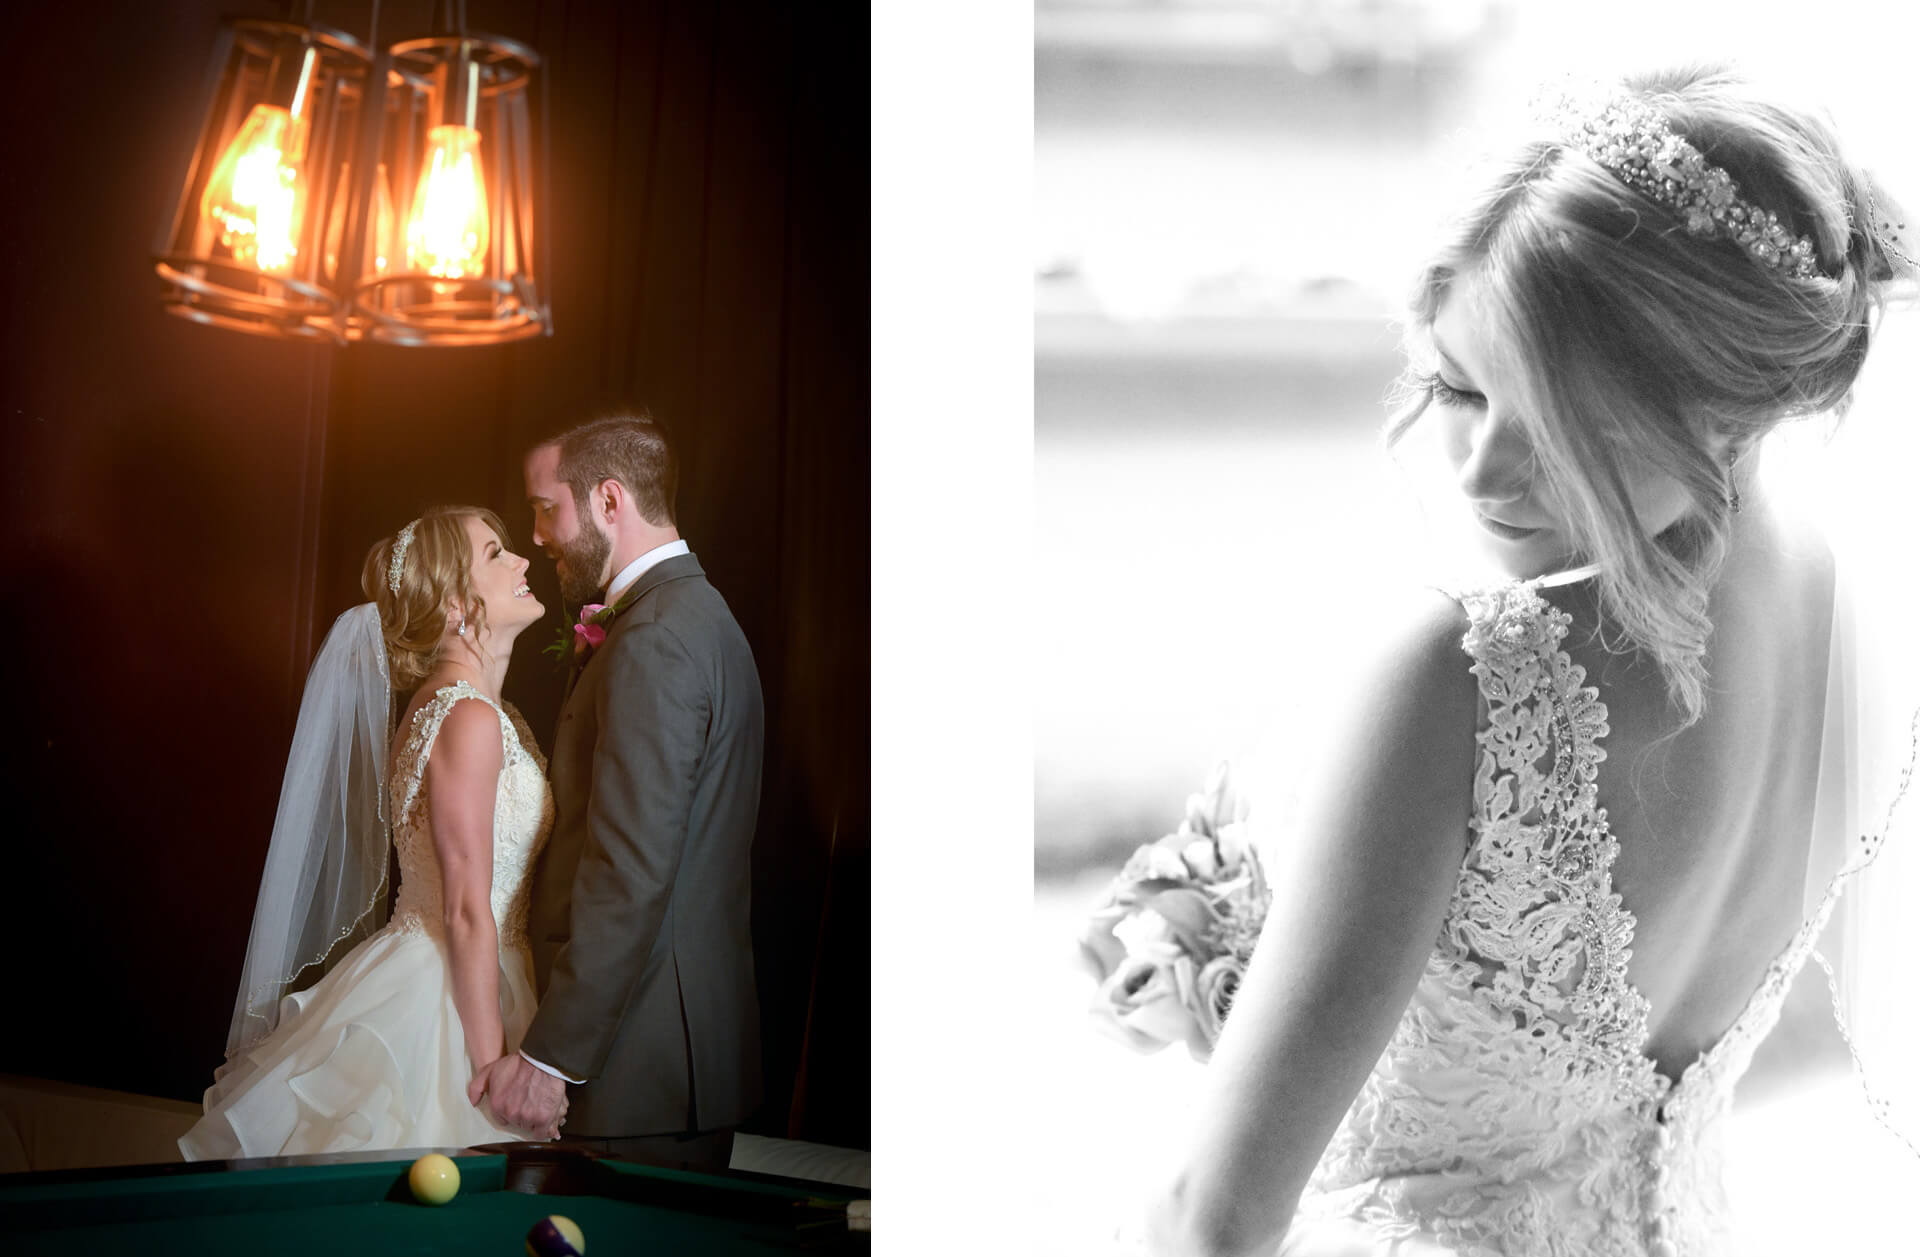 Two photos featuring Michigan wedding couple during their Crofoot wedding in Pontiac, Michigan where all the photos took place indoors.